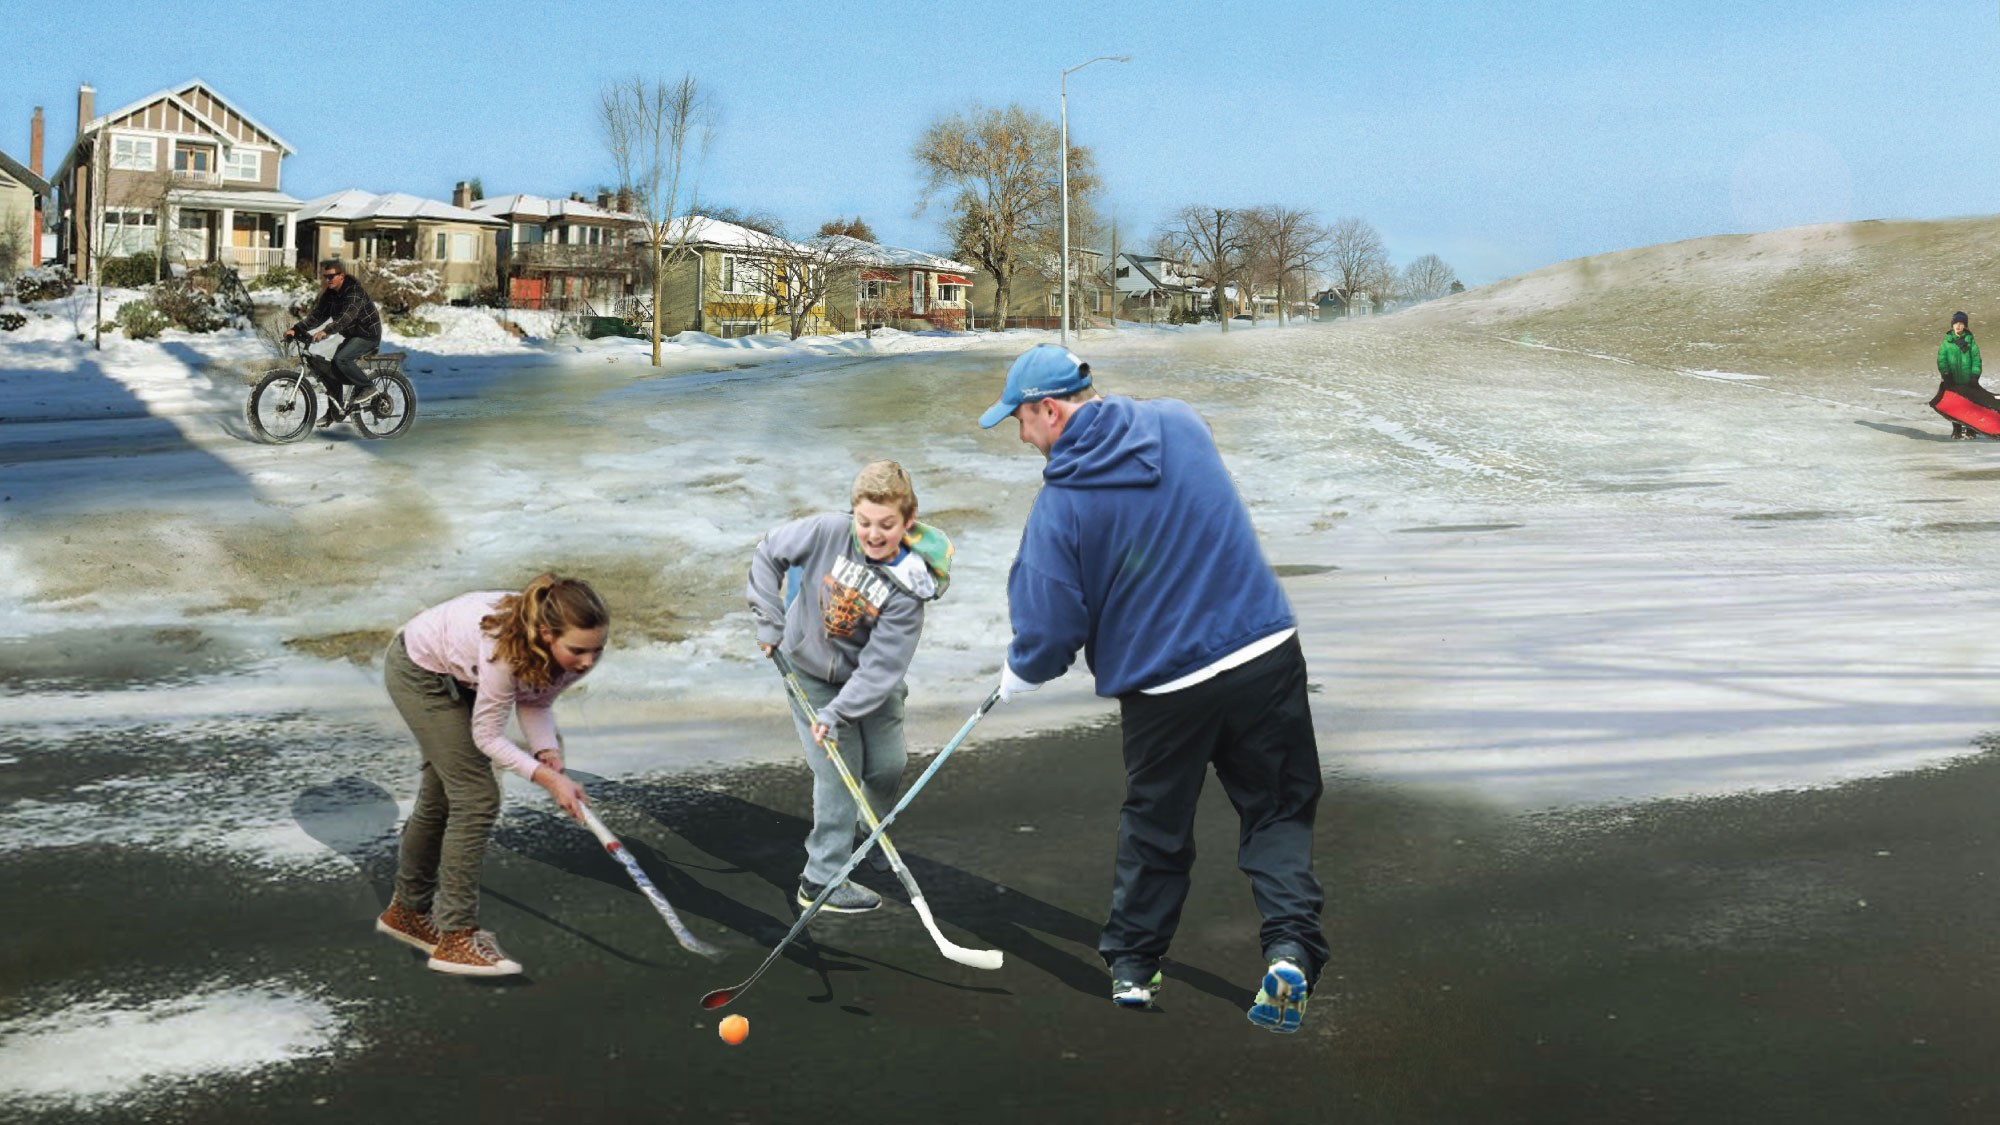 people playing hockey in slushy field and boy standing with toboggan